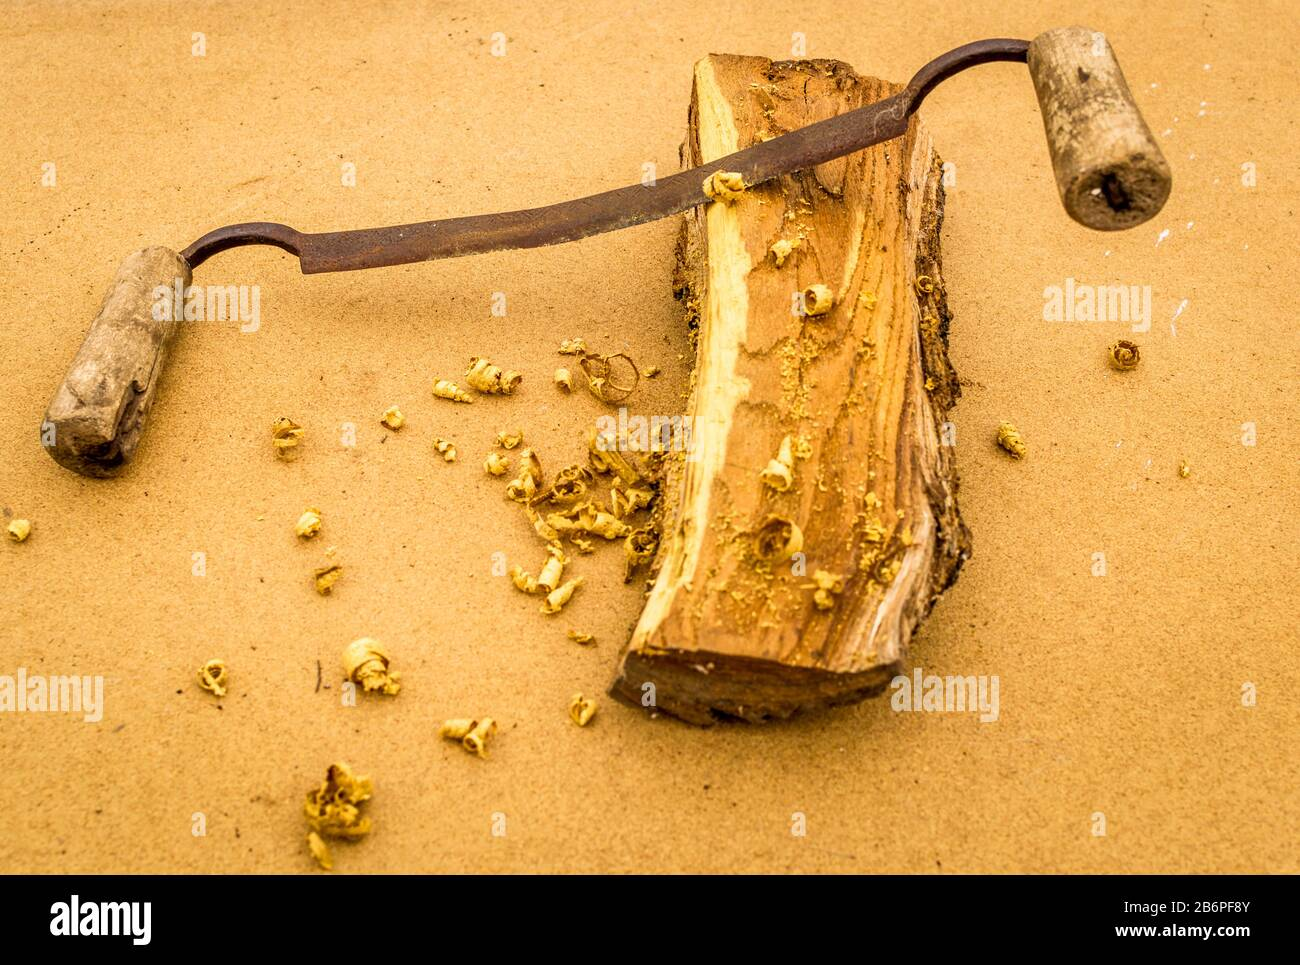 Woodworking Adze High Resolution Stock Photography And Images Alamy